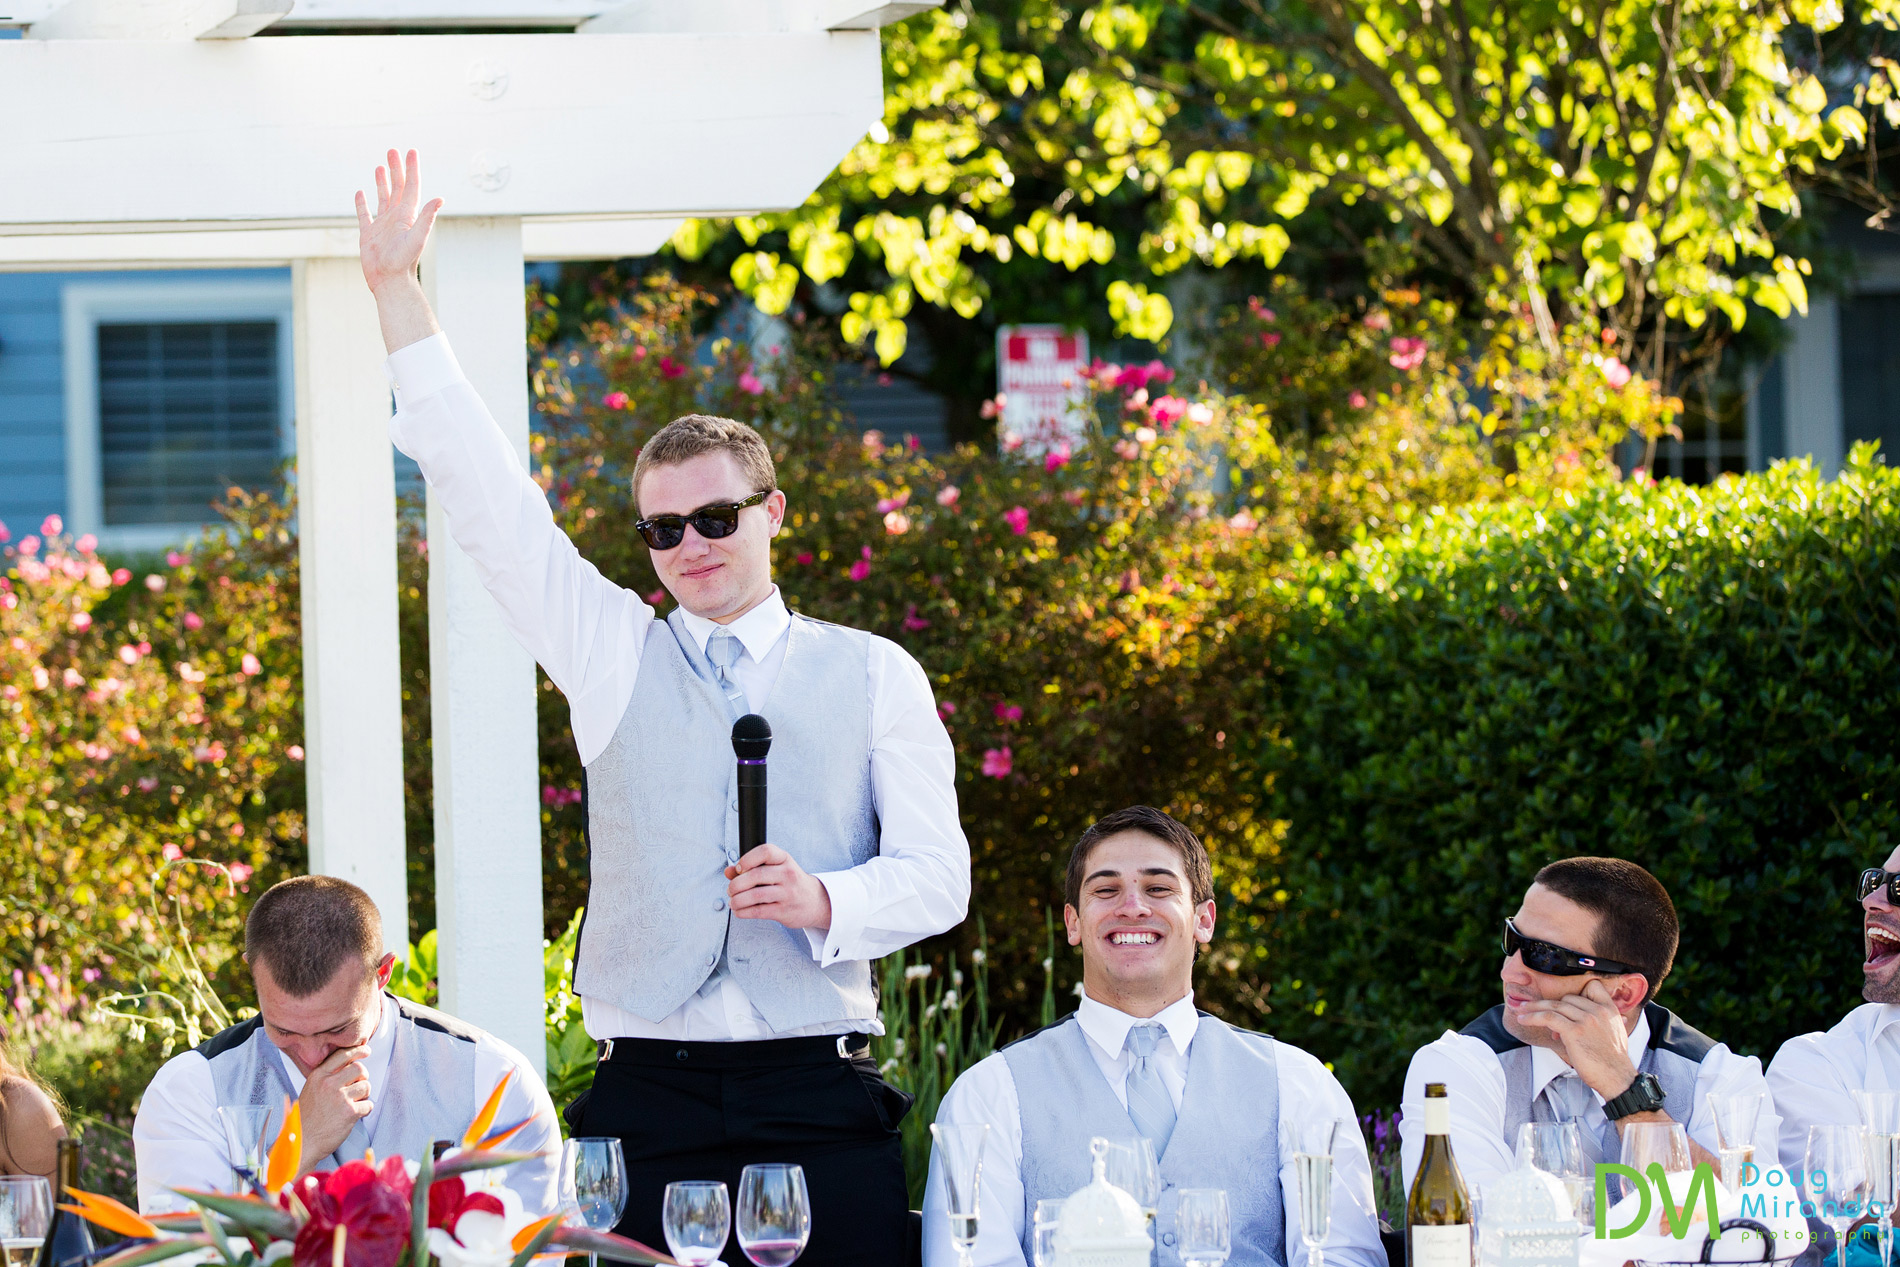 Tommy's bother gave a super funny speech during the reception.